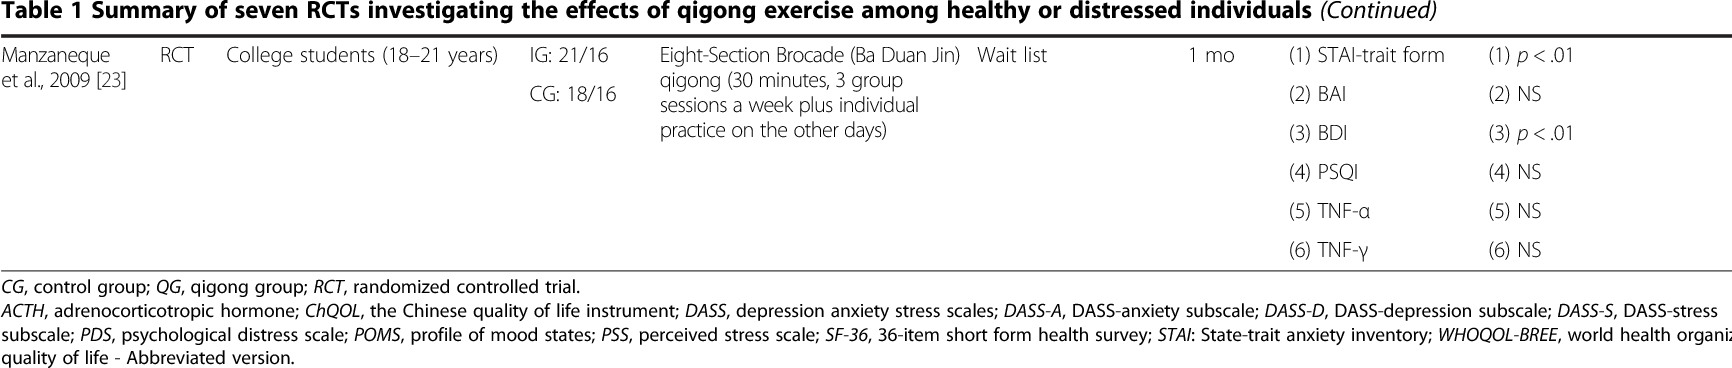 Managing stress and anxiety through qigong exercise in